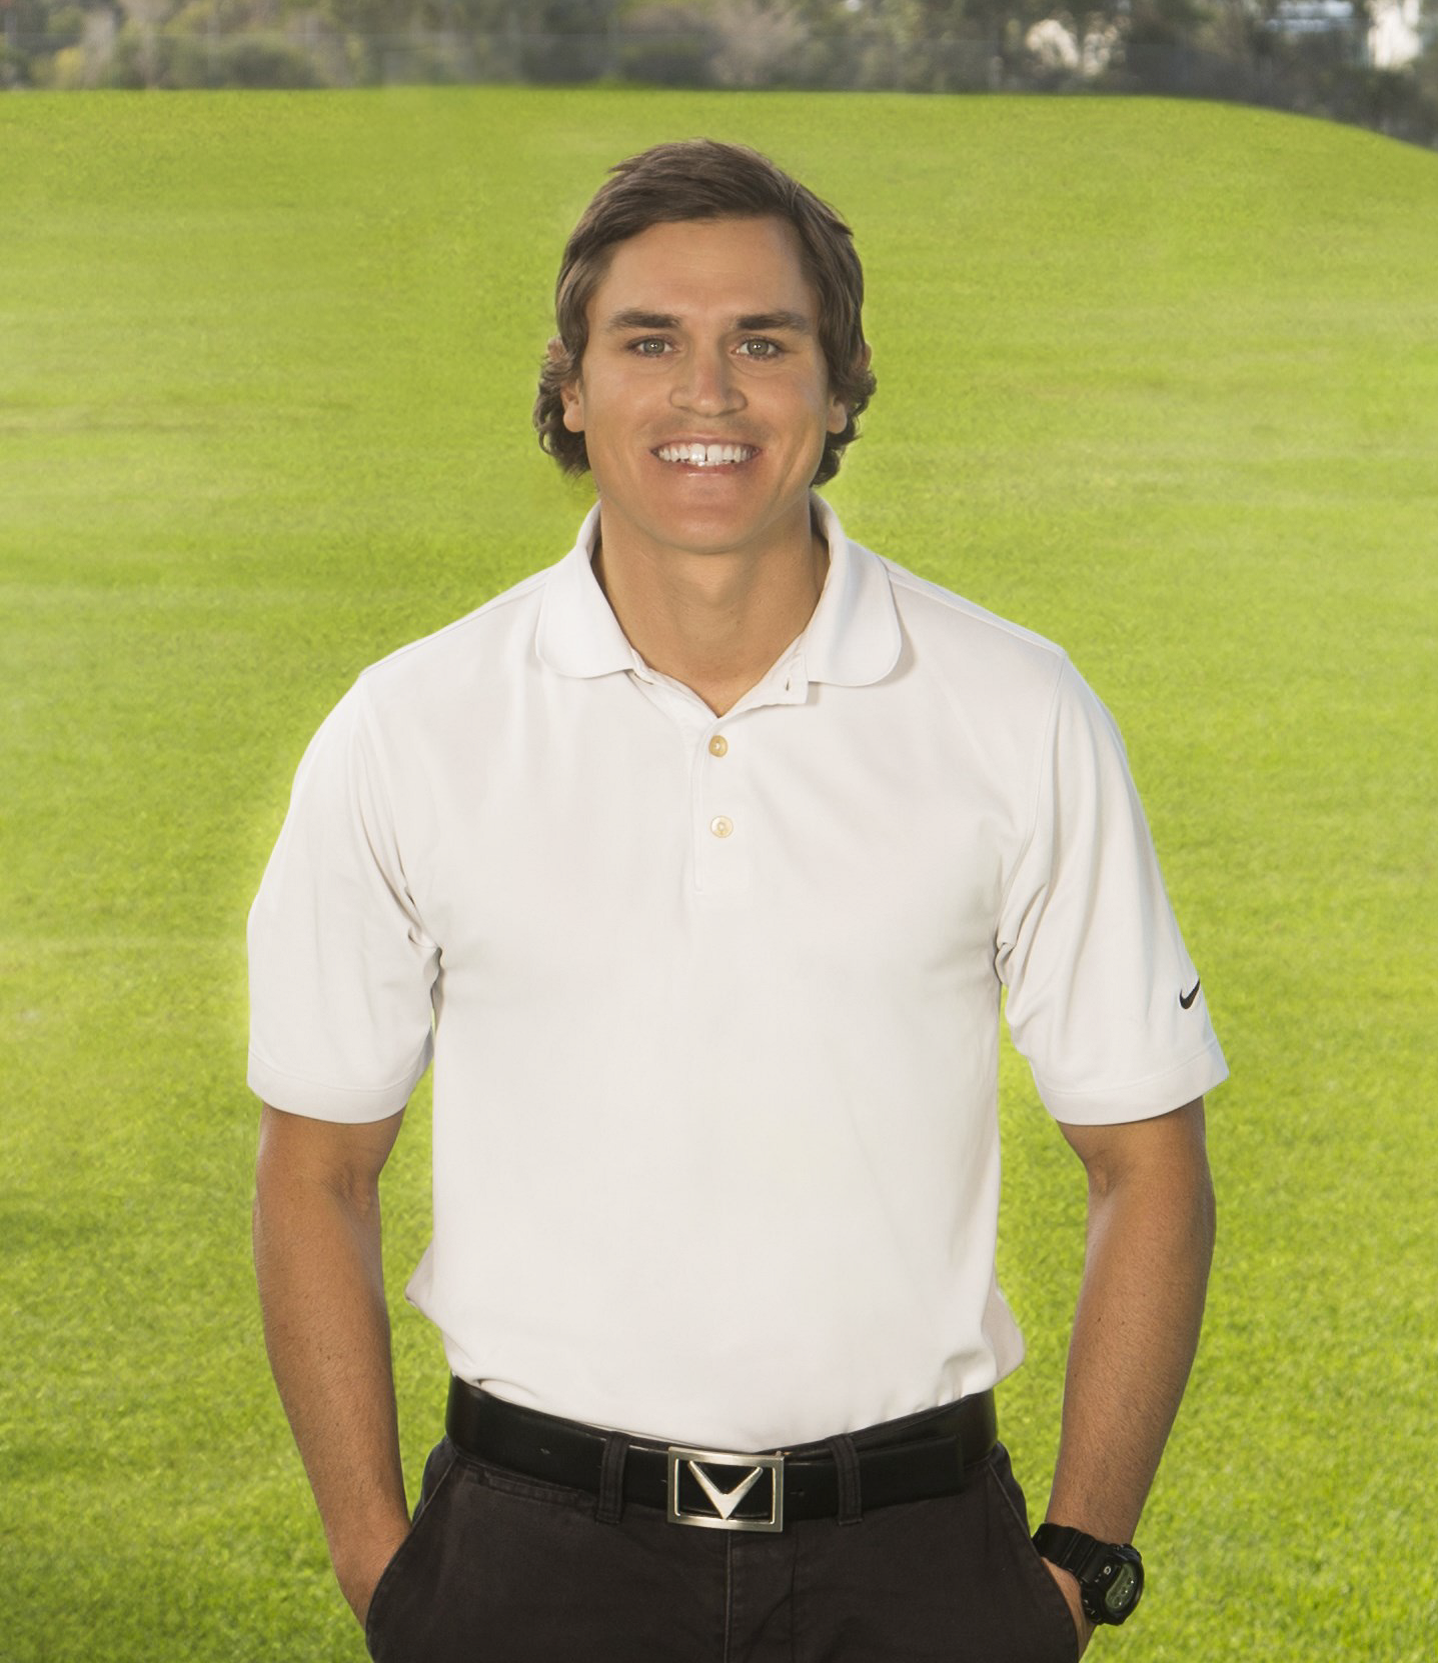 Michael Infanti -Elite Coach and Short Game Specialist